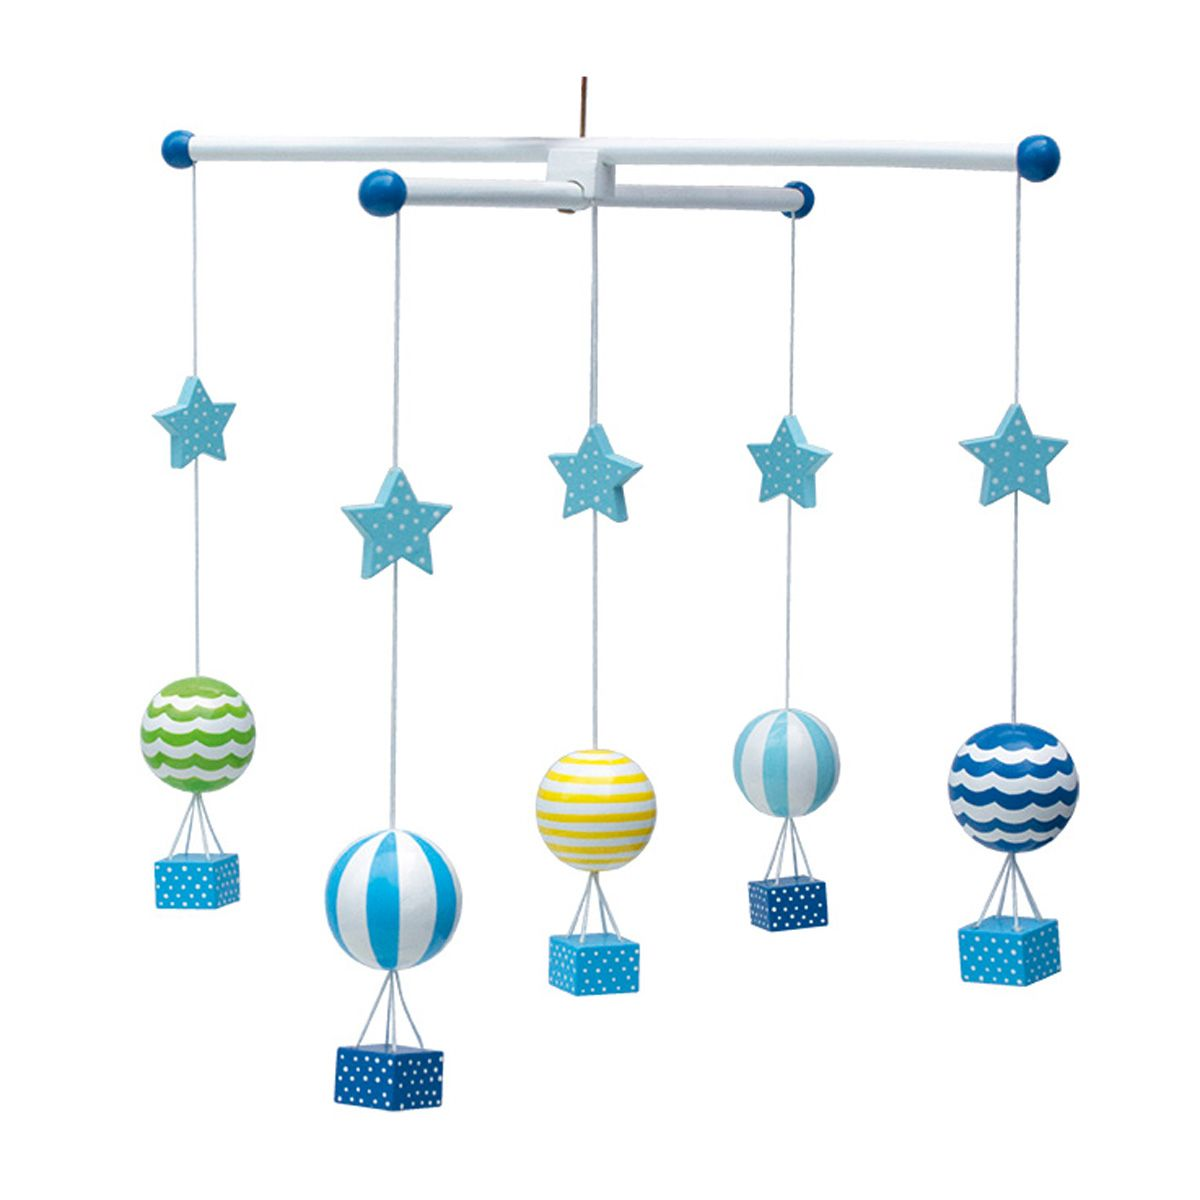 holz mobile ballon in blau von jabadabado kaufen bei little roomers. Black Bedroom Furniture Sets. Home Design Ideas